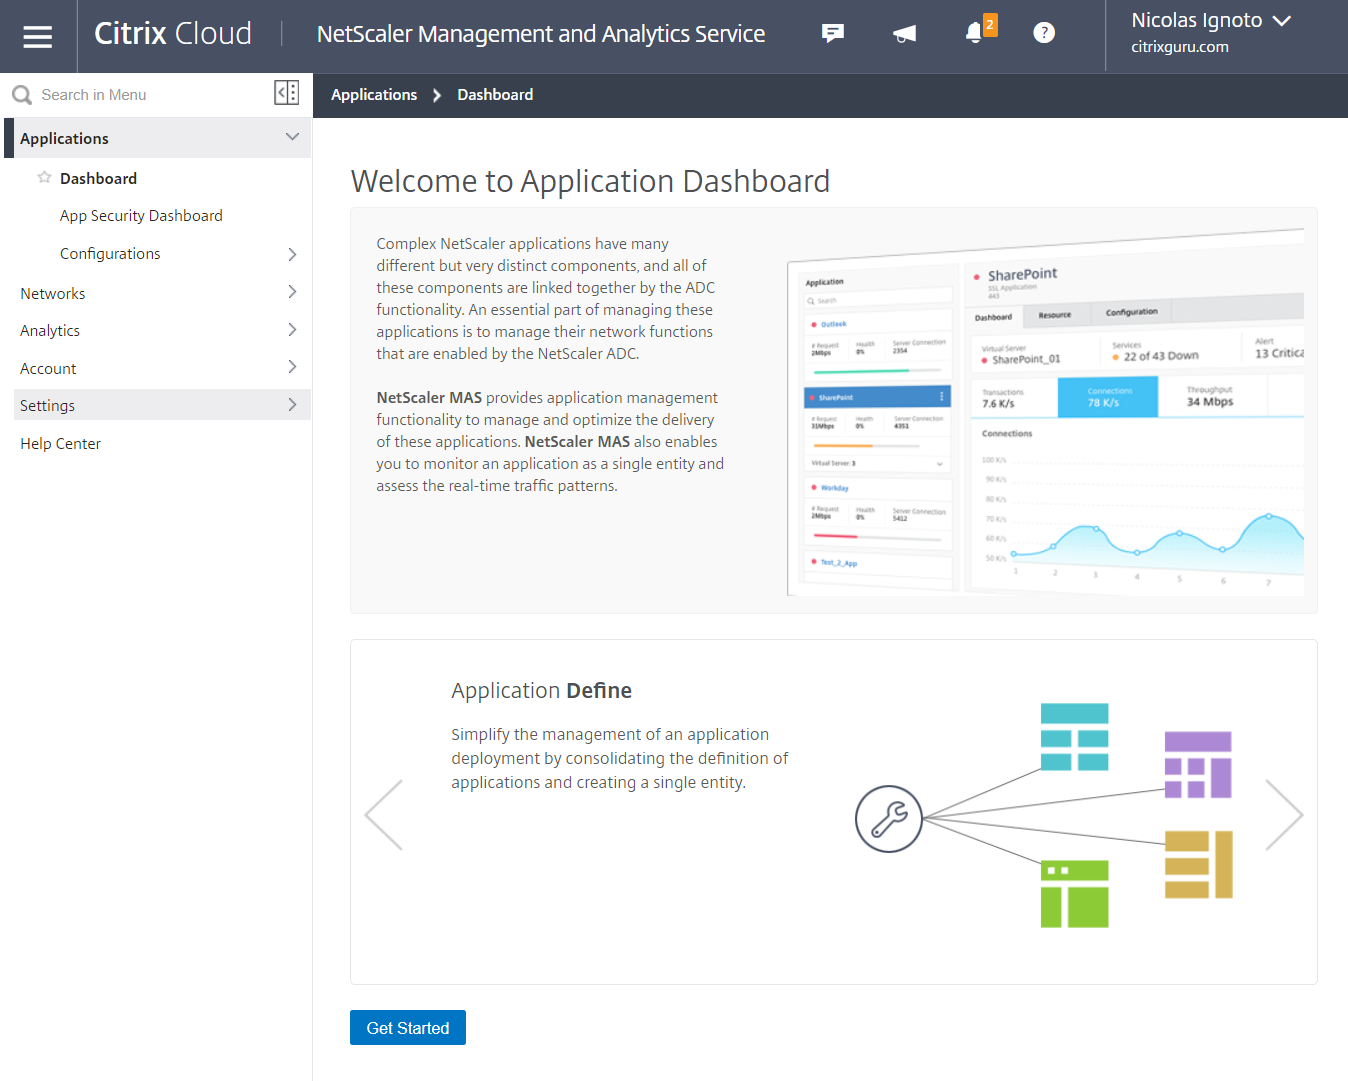 Citrix Management and Analytics Service - Dashboard